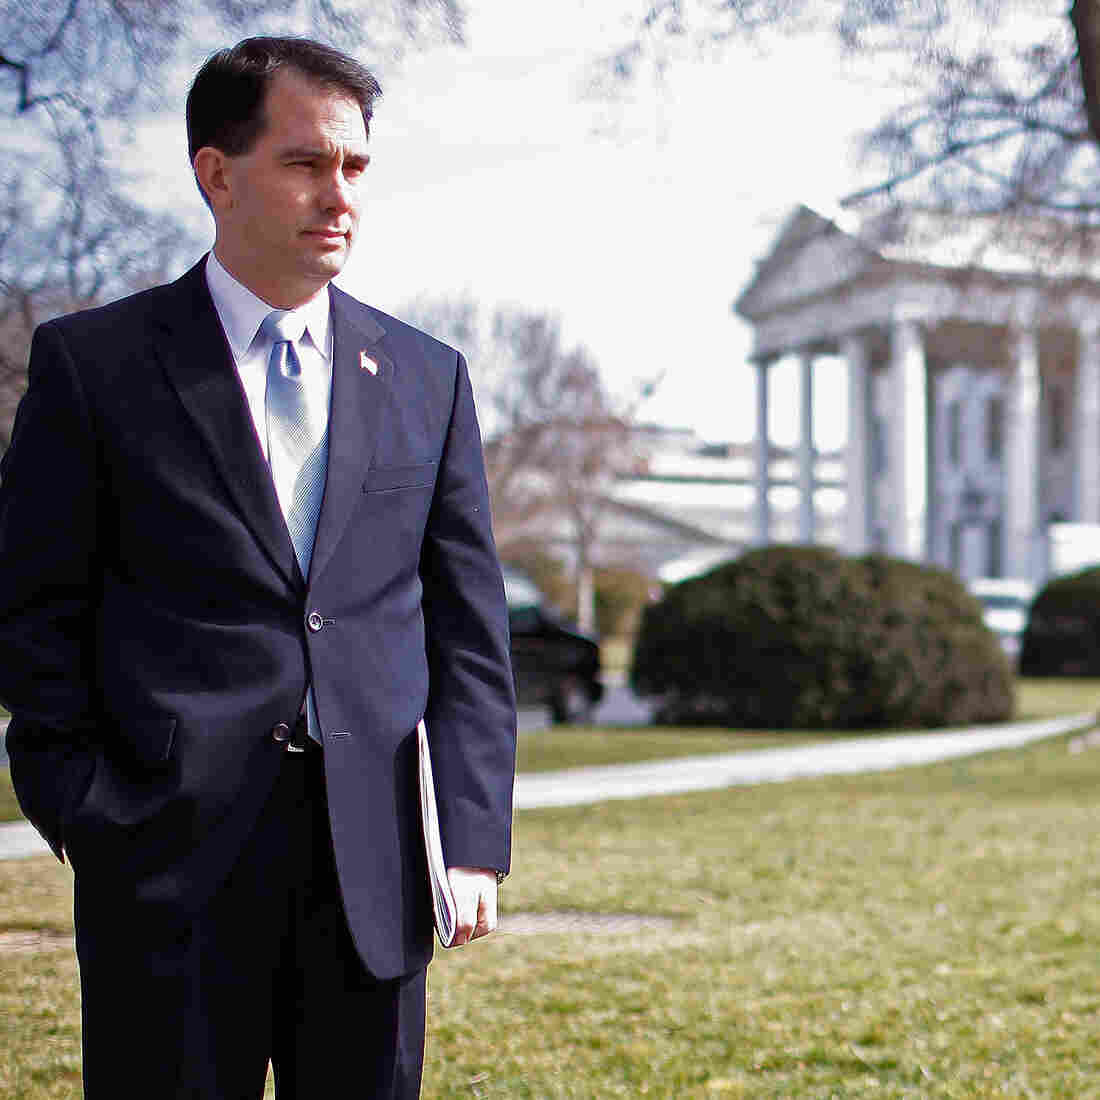 5 Things You Should Know About Scott Walker